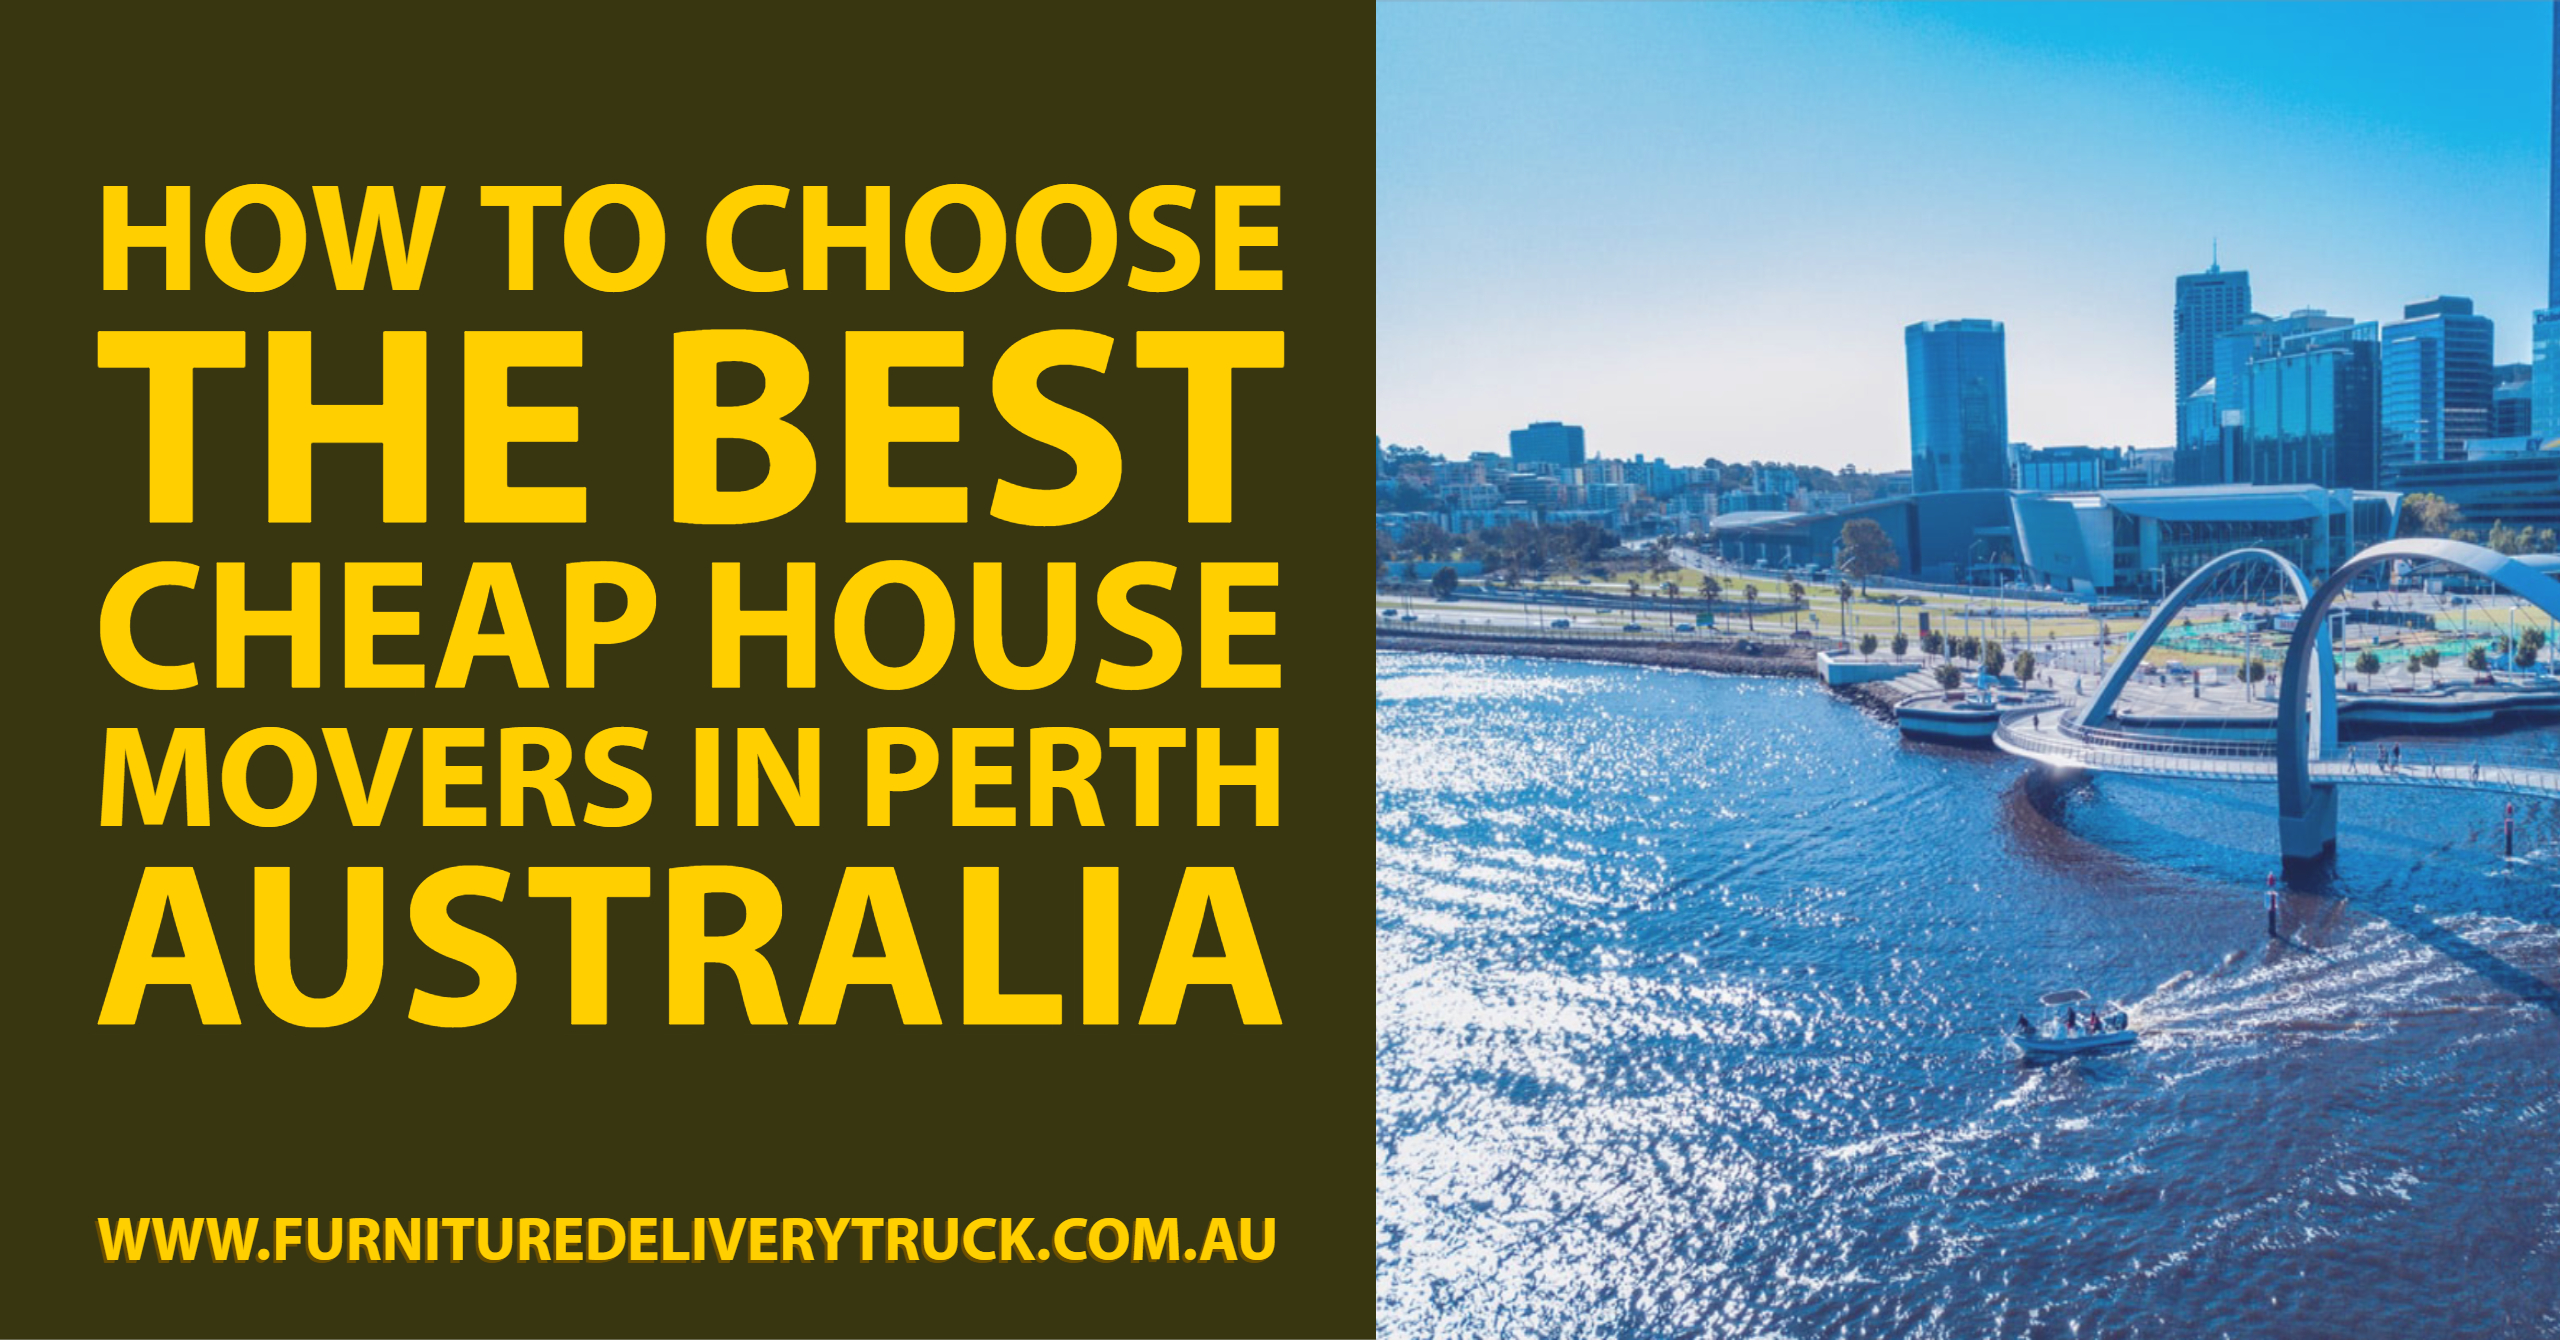 How to Choose The Best Cheap House Movers In Perth Australia